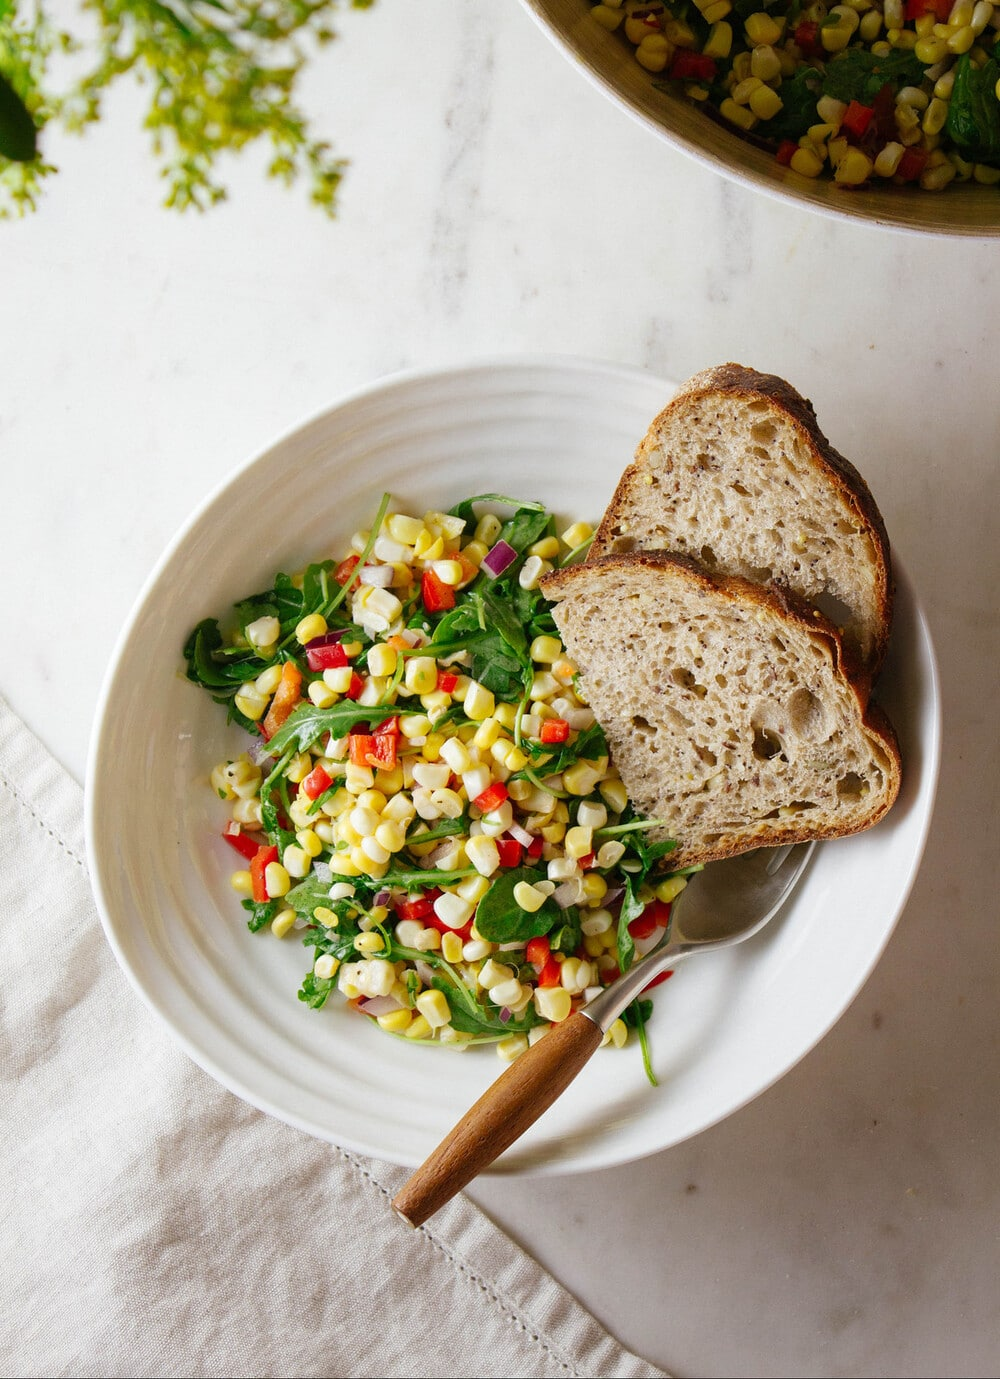 top down view of a serving of corn and arugula salad in a white bowl with sliced bread.